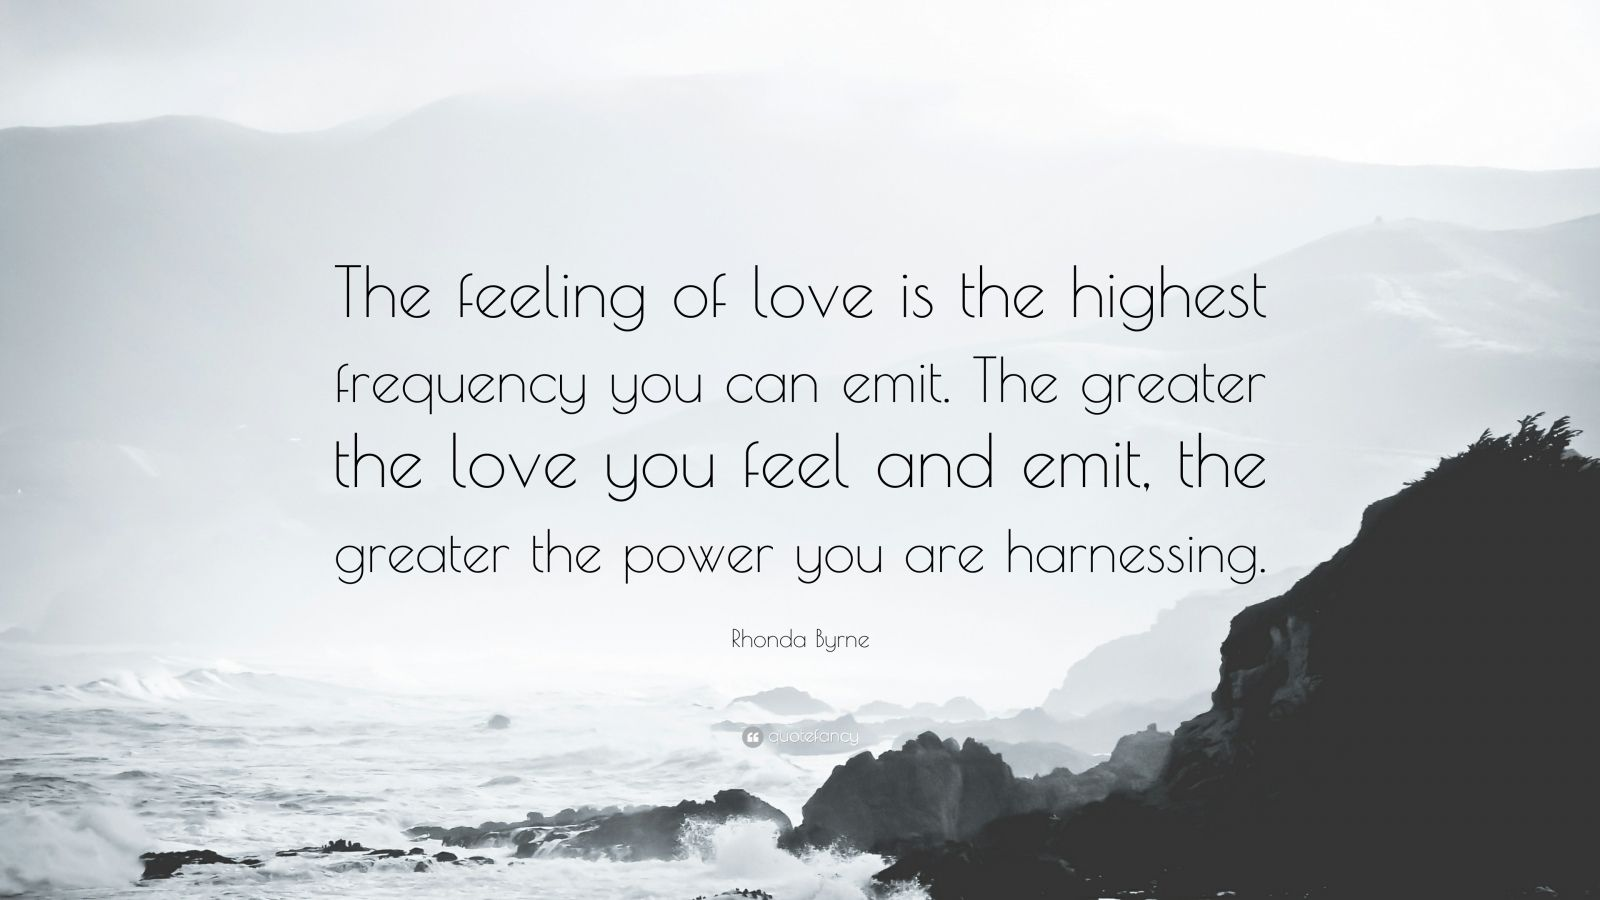 """Rhonda Byrne Quote: """"The feeling of love is the highest frequency you can emit. The greater the love you feel and emit, the greater the power you are harnessing."""""""